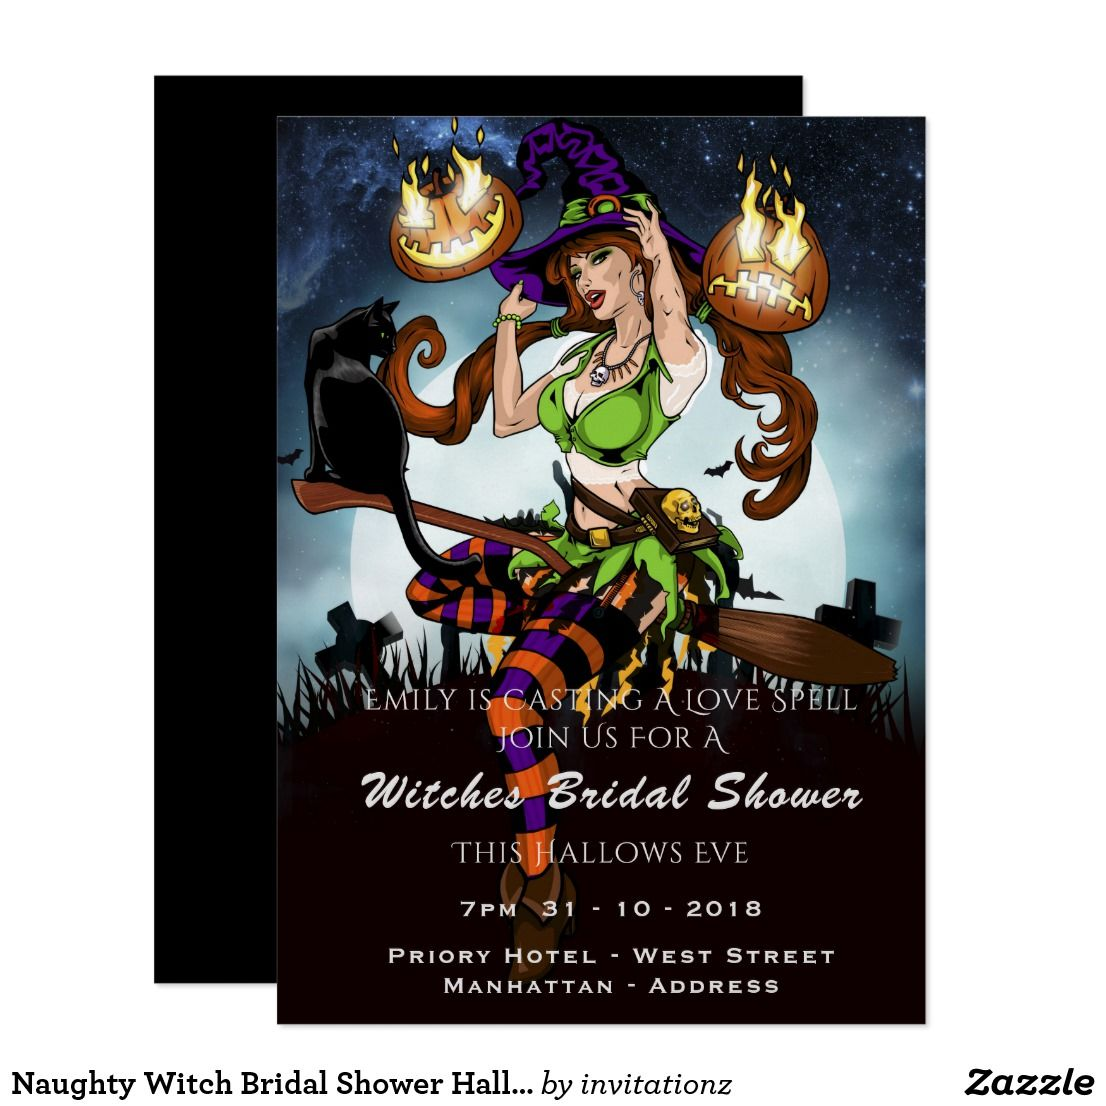 Naughty Witch Bridal Shower Halloween Party Invite | Bridal showers ...